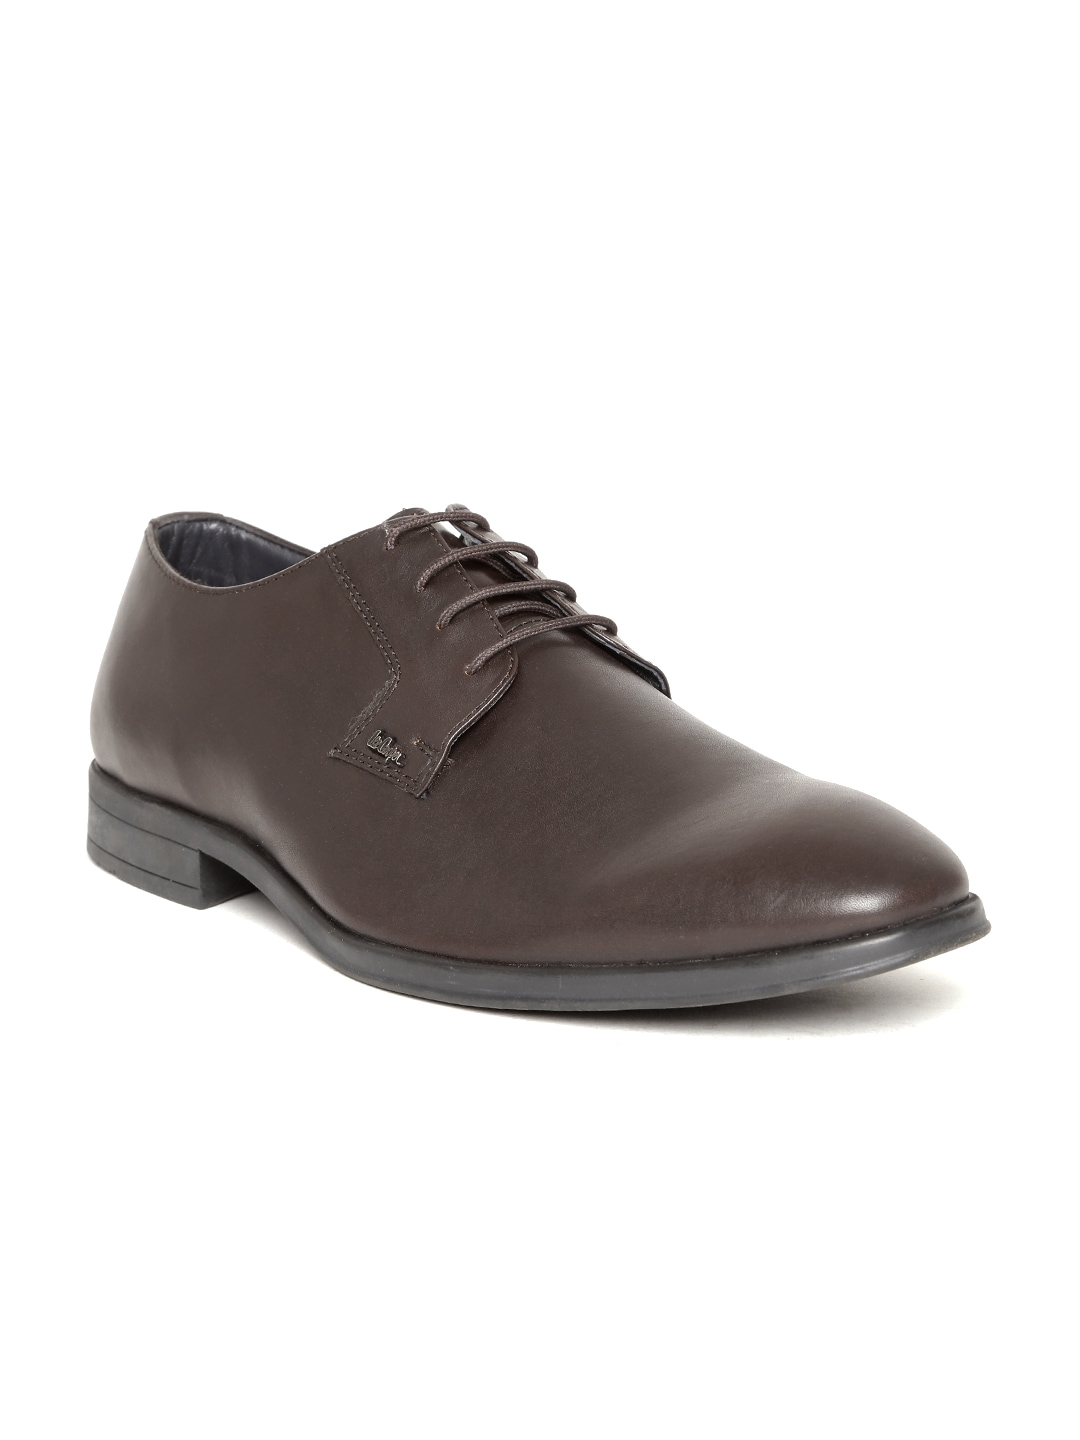 a96d0e80a5a Lee cooper lc2173-brown Men Coffee Brown Genuine Leather Formal Shoes- Price  in India